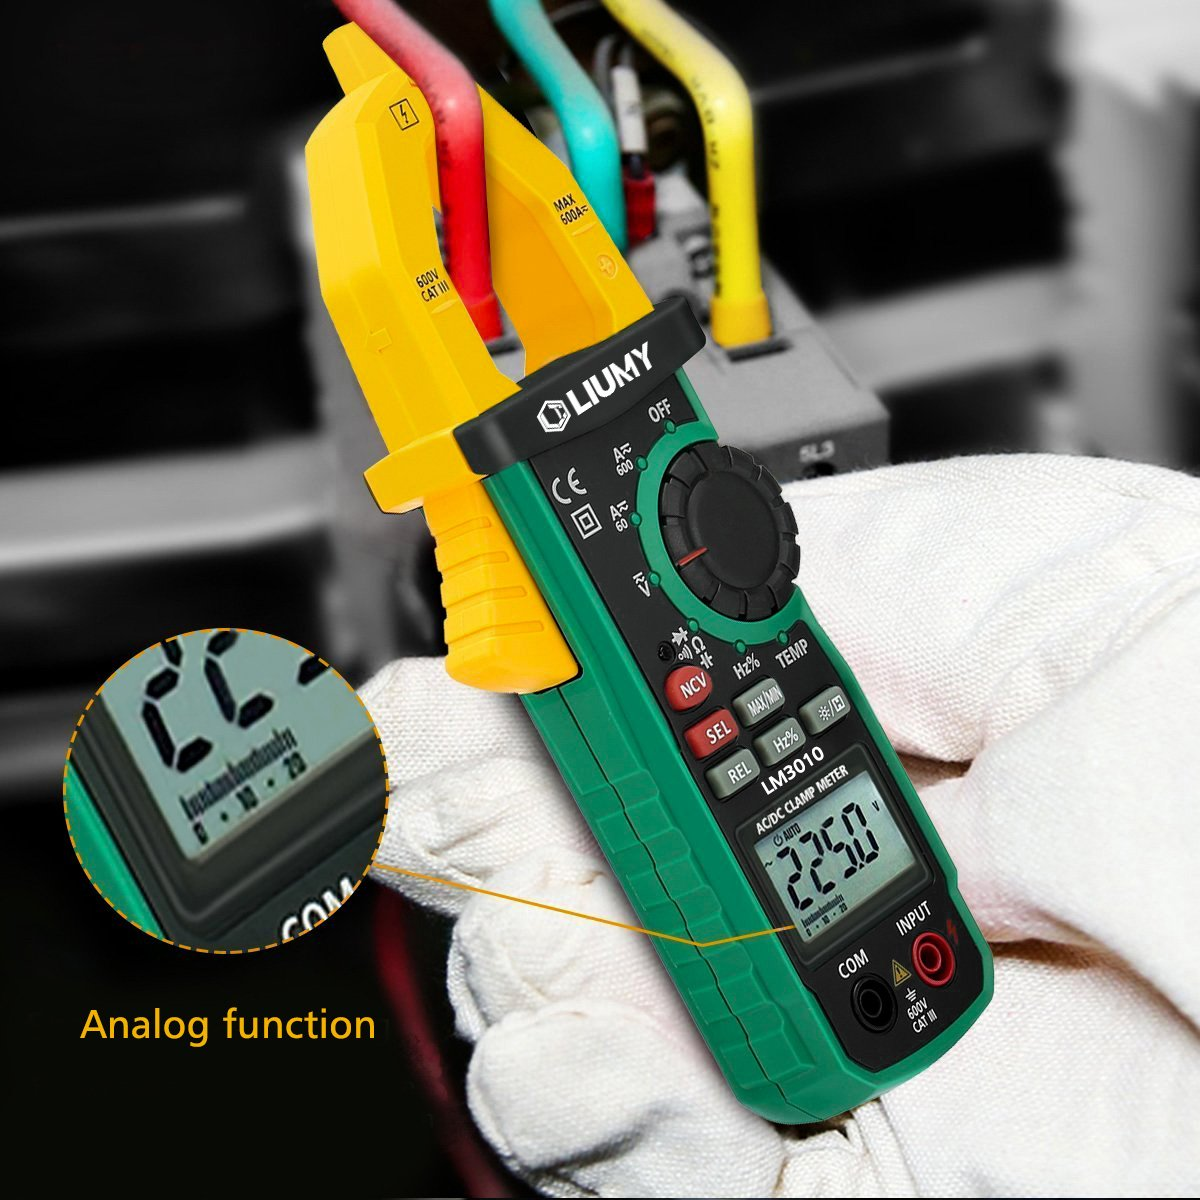 Digital Clamp Meter, LIUMY Auto-Ranging AC/DC Clamp Multimeter with Analog Function, NCV, Work Light/ Memory peak, Non- contact Voltages/ Frequency/ Resistance/ Capacitance/ Connections/ Diodes by Liumy (Image #5)